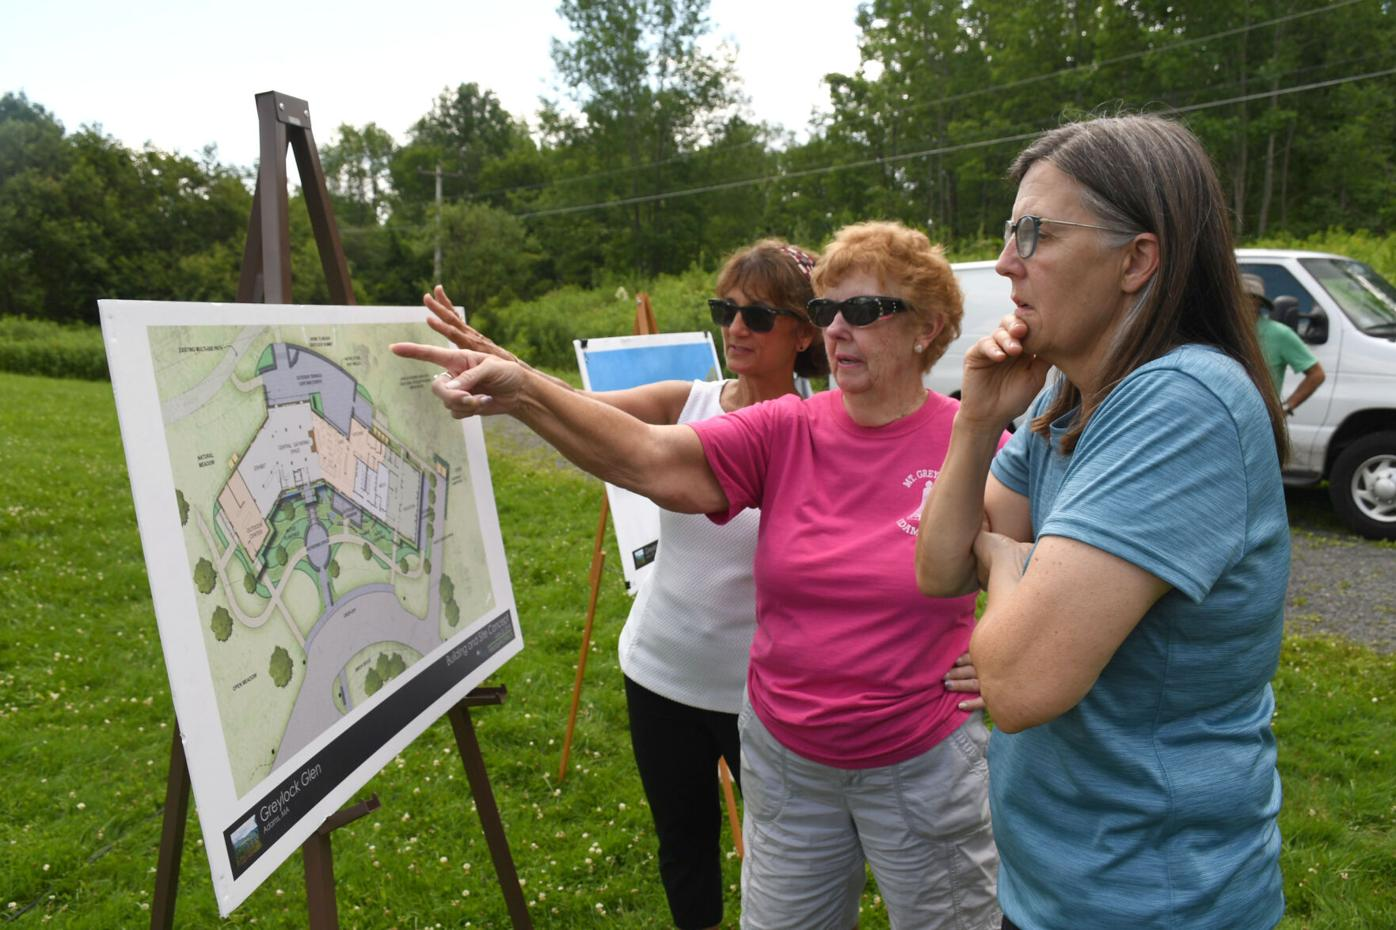 Three women look at architectural plans